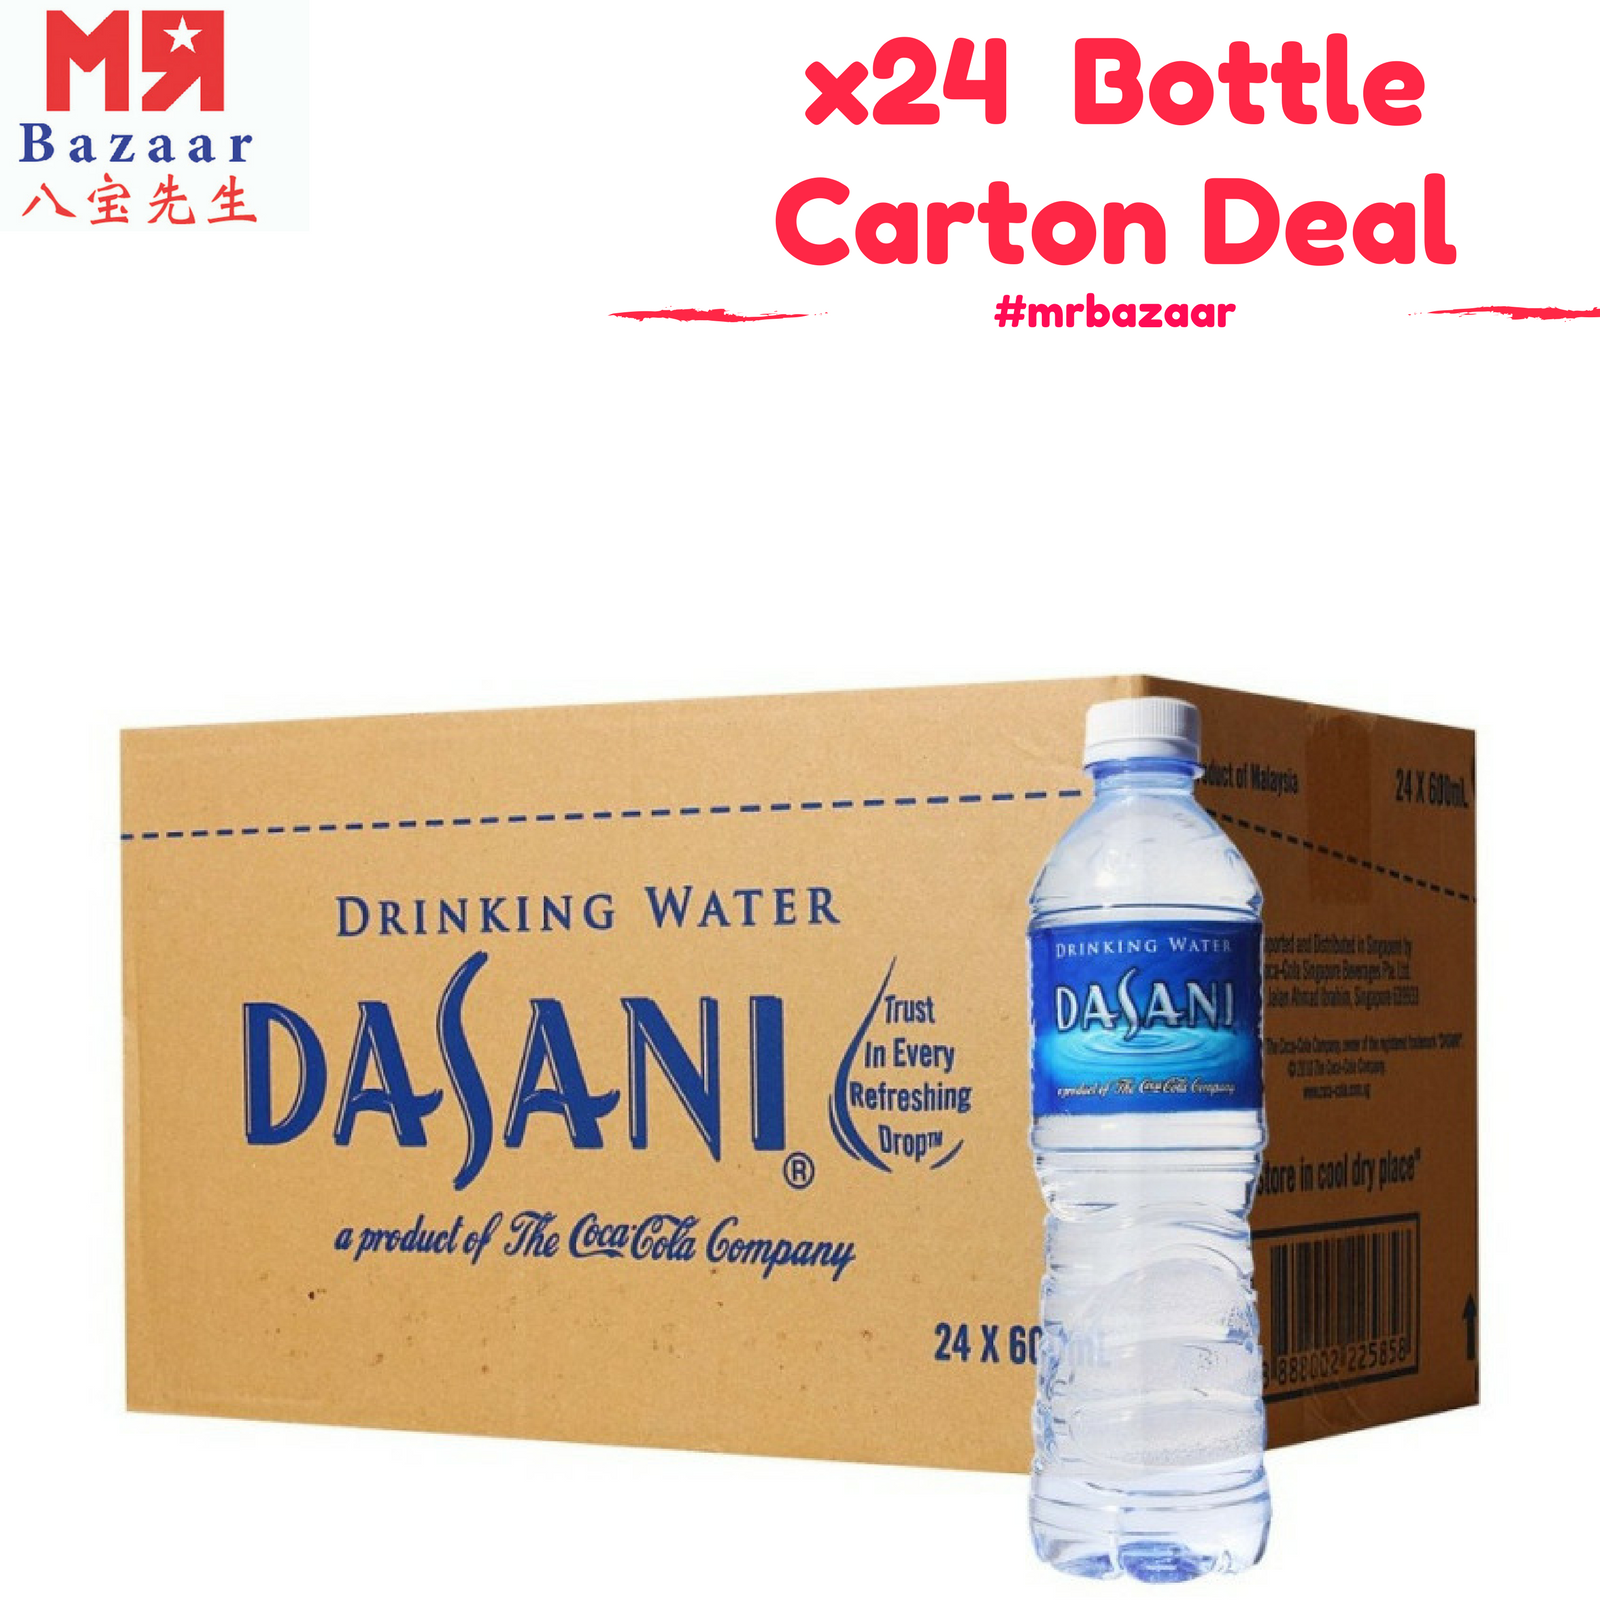 Dasani Pure Drinking Water (600ml) x 24 Bottles Carton Deal ('Mineral Water')